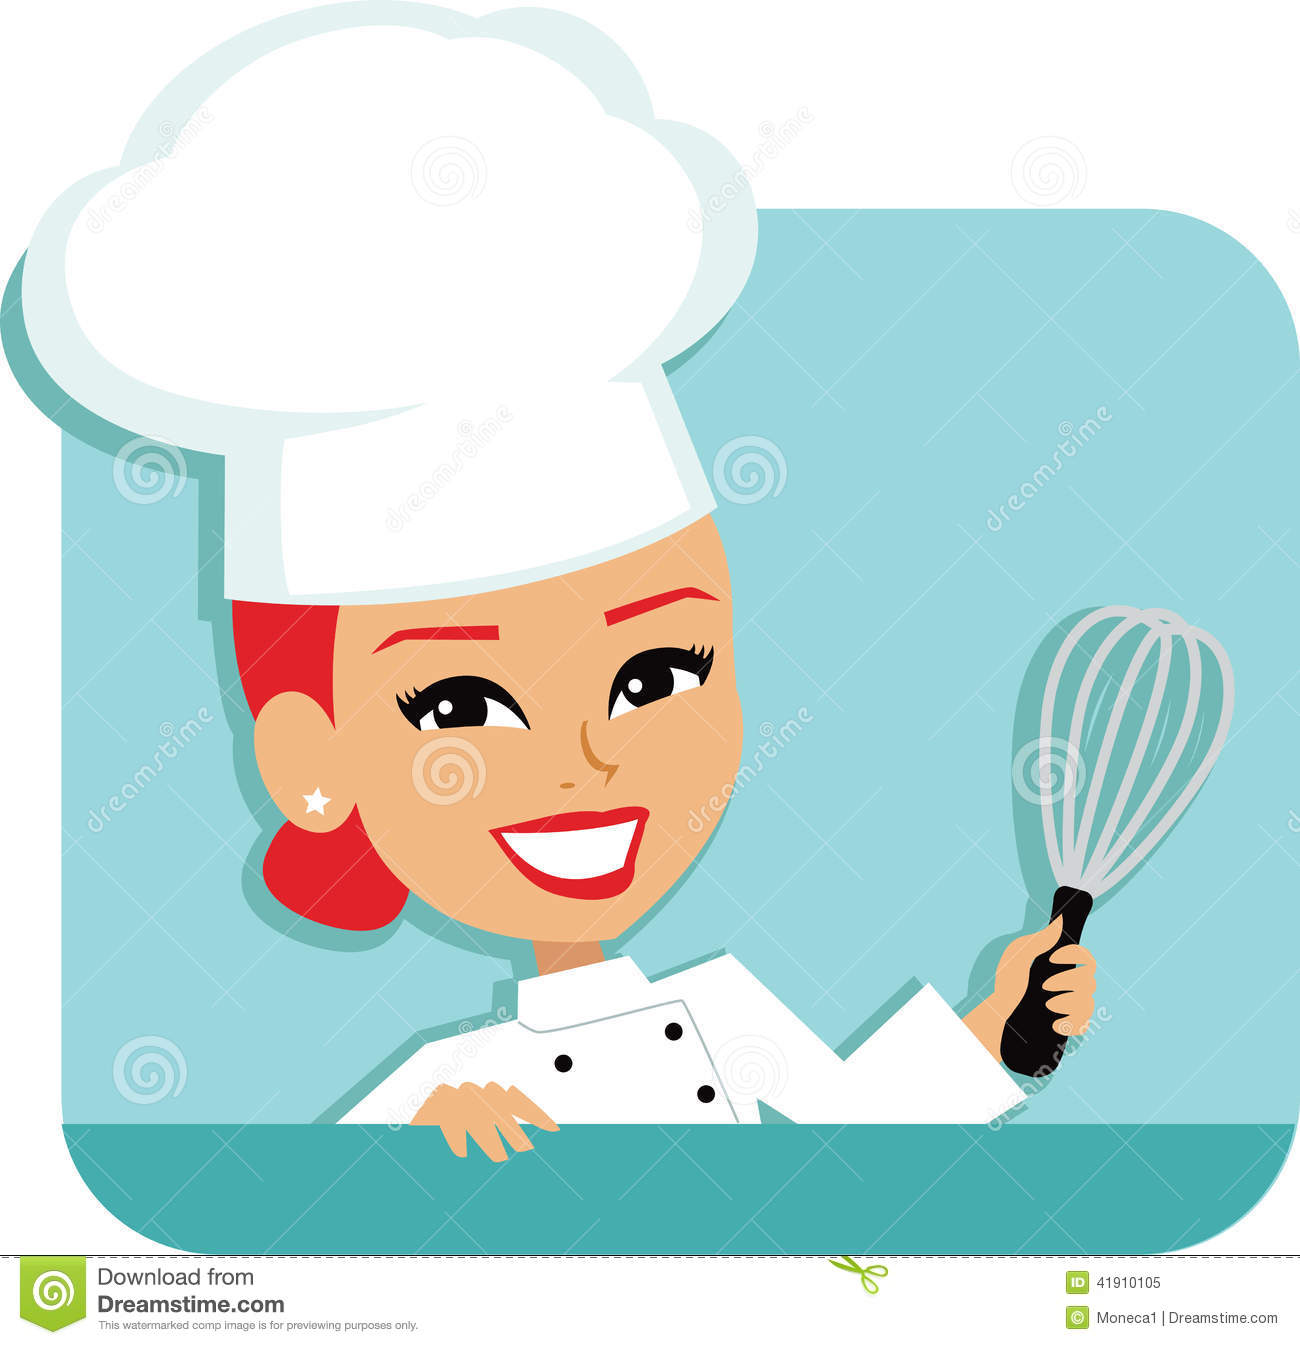 Cocinero Cartoon Baking Illustration de la mujer